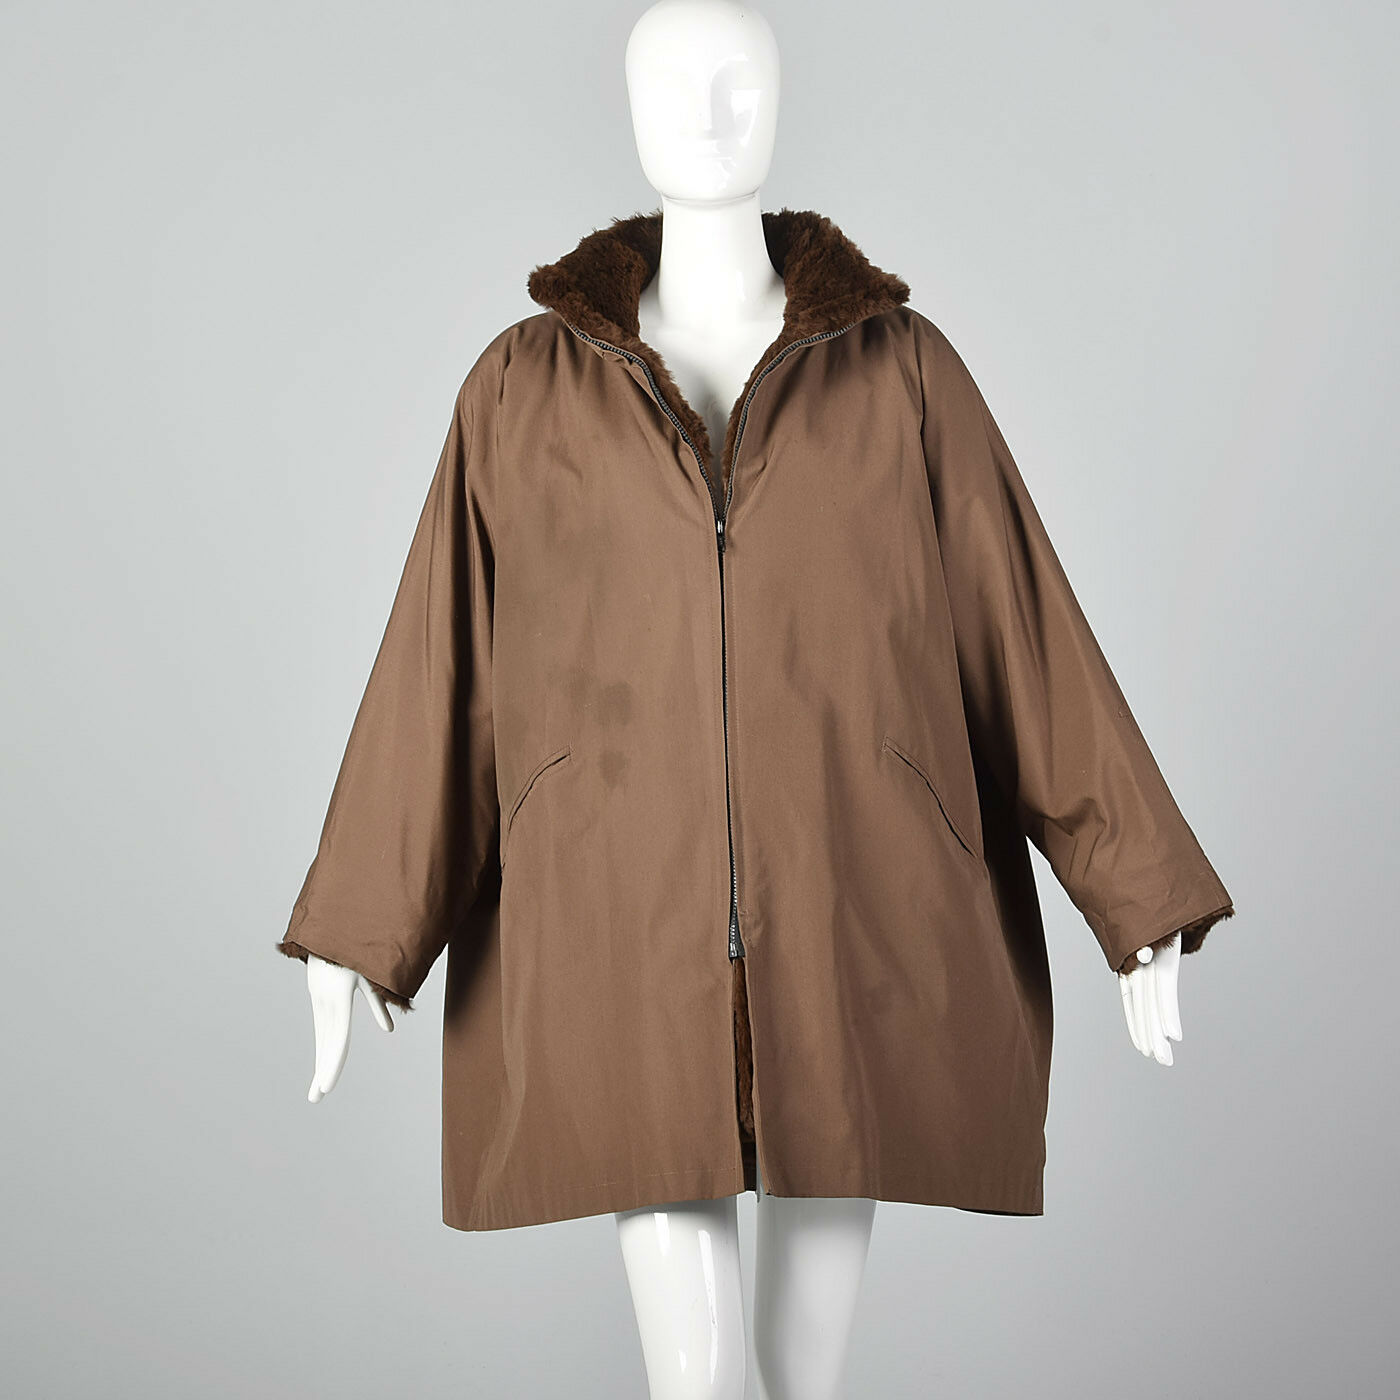 XXL 1980s Brown Oversized Swing Coat Fur Lined VTG 1980s Removable Lining Jacket